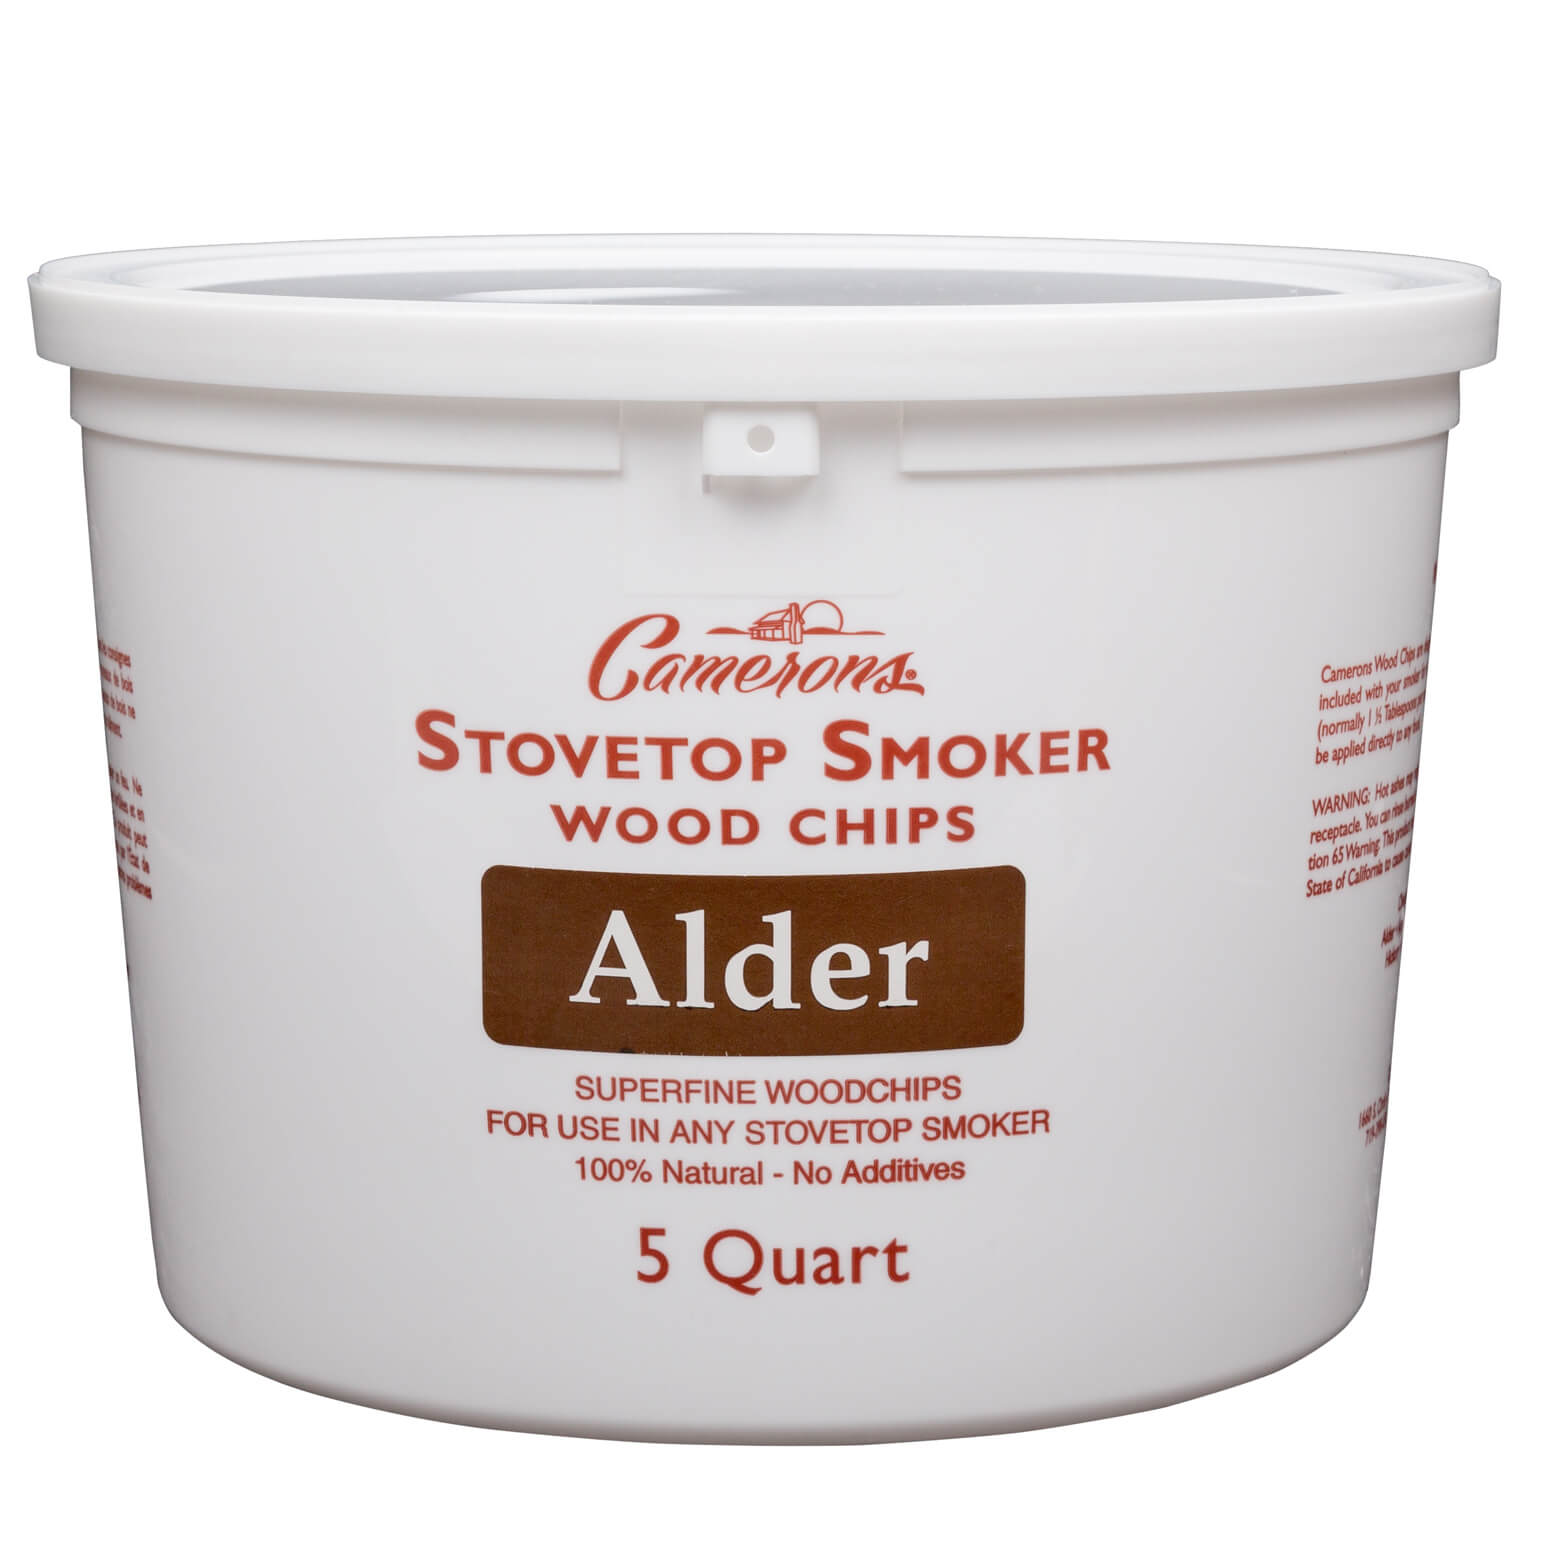 Indoor Smoking Chips - Superfine - 5 Quart from Camerons Products